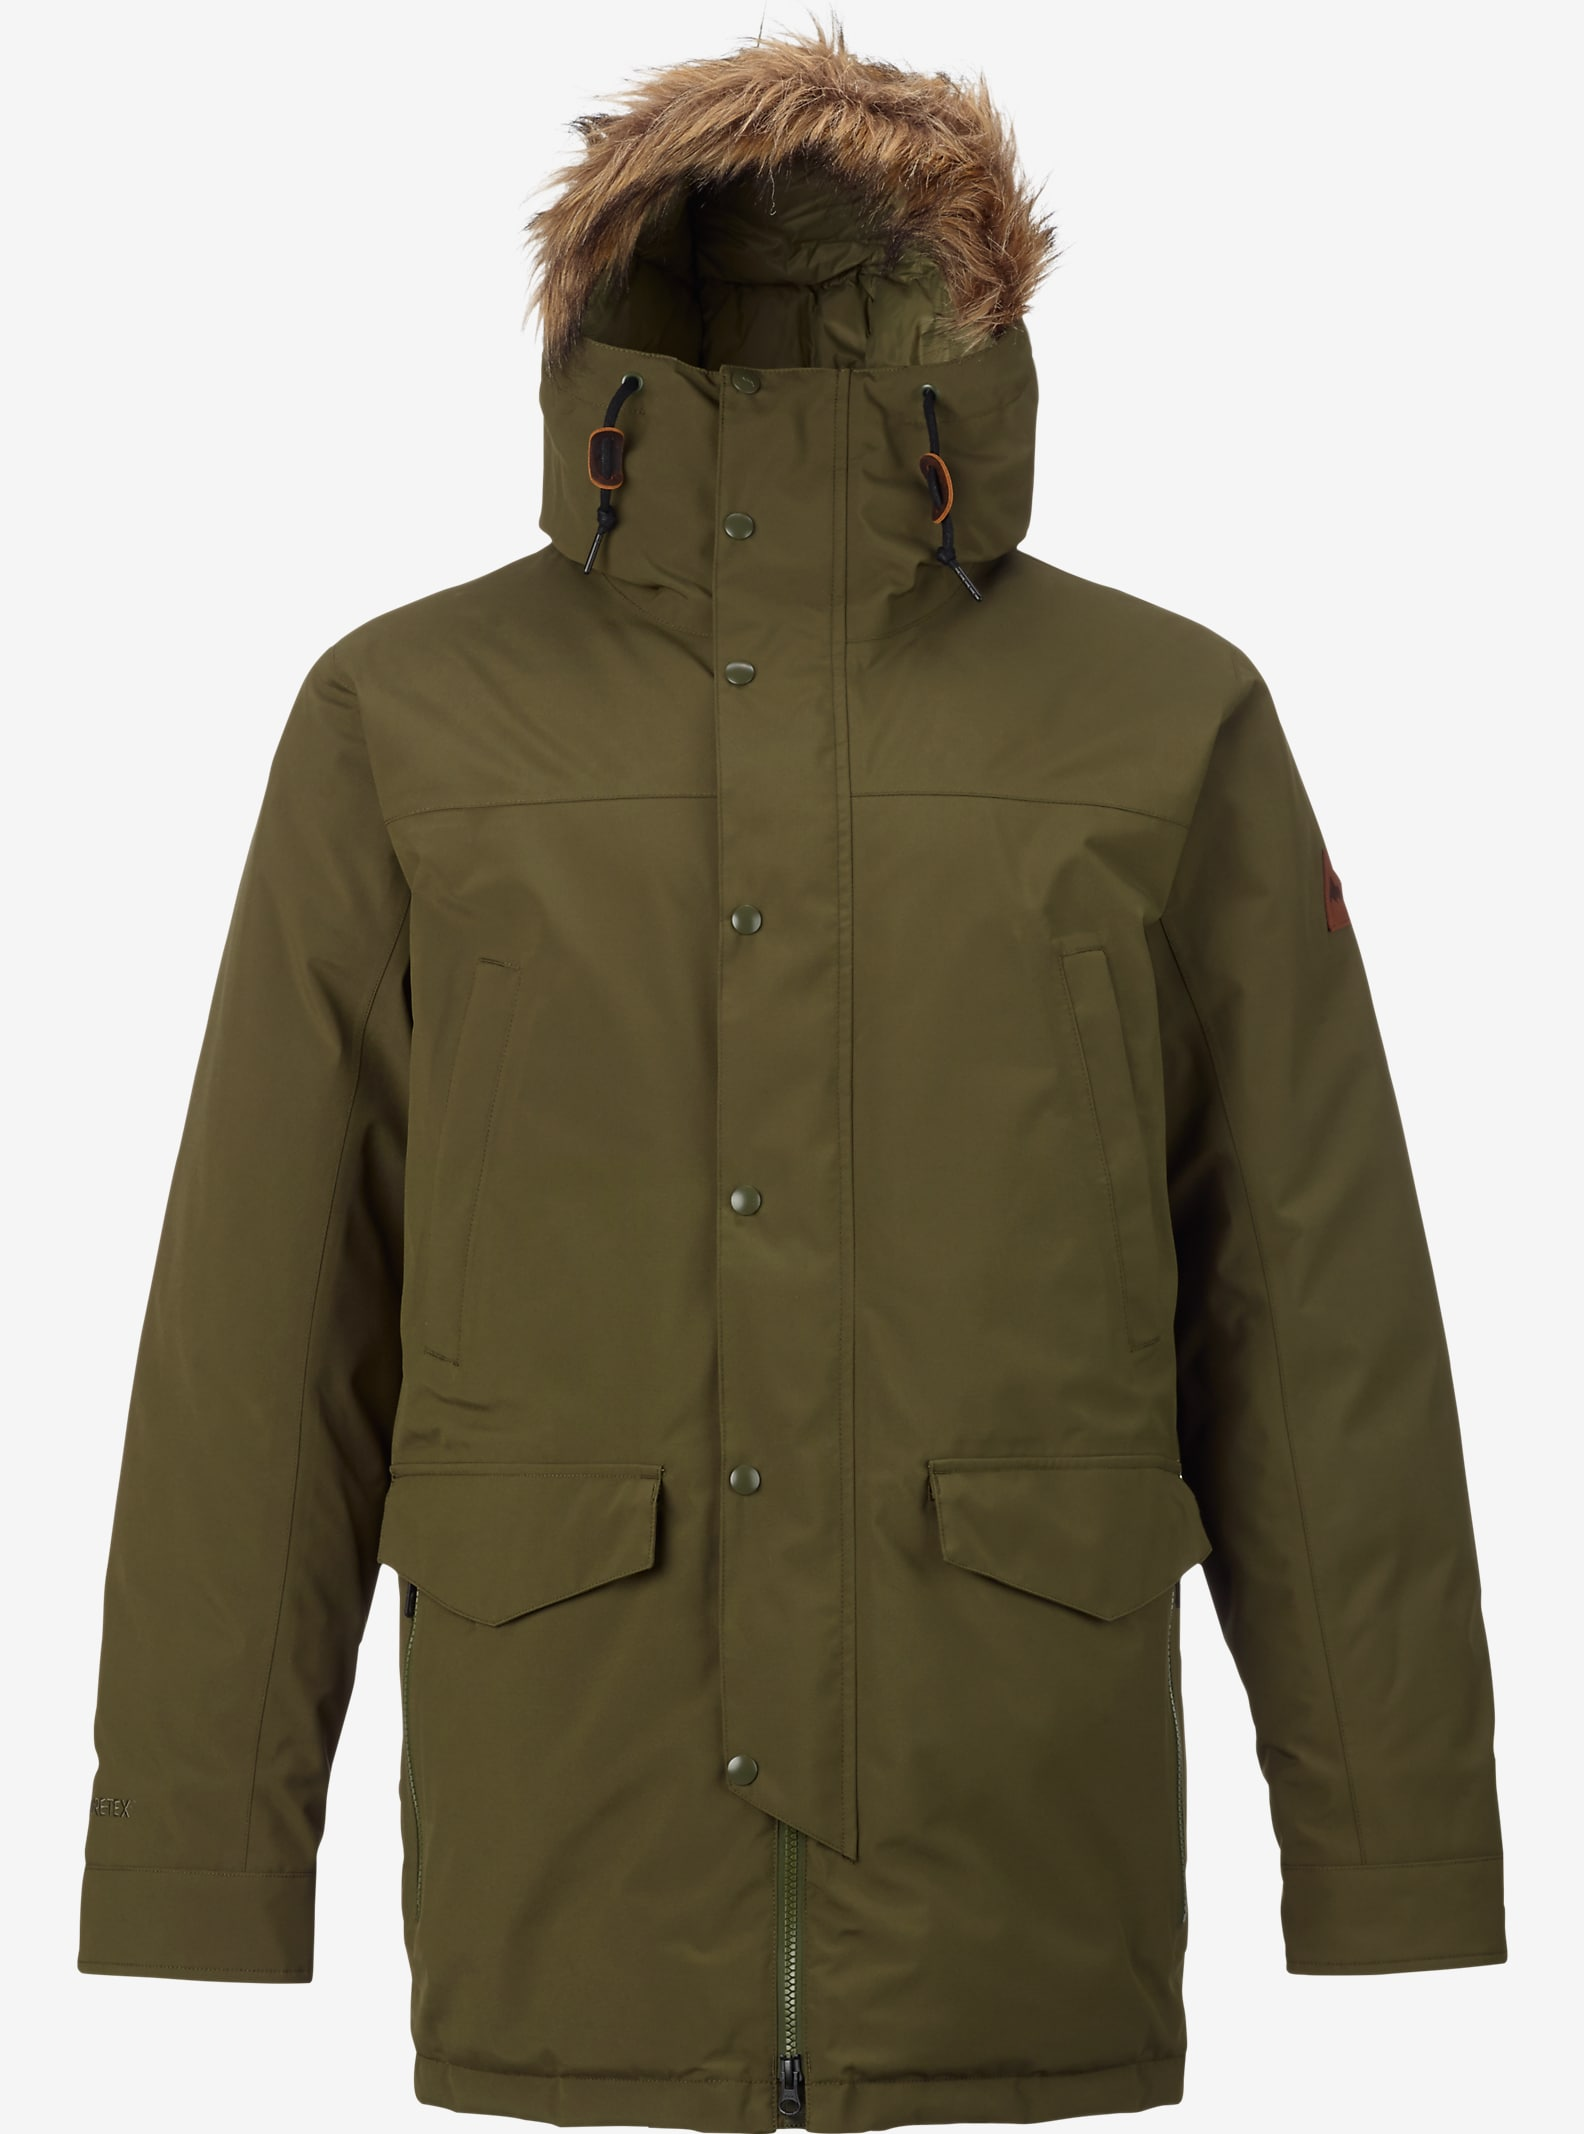 Burton Garrison Jacket shown in Keef